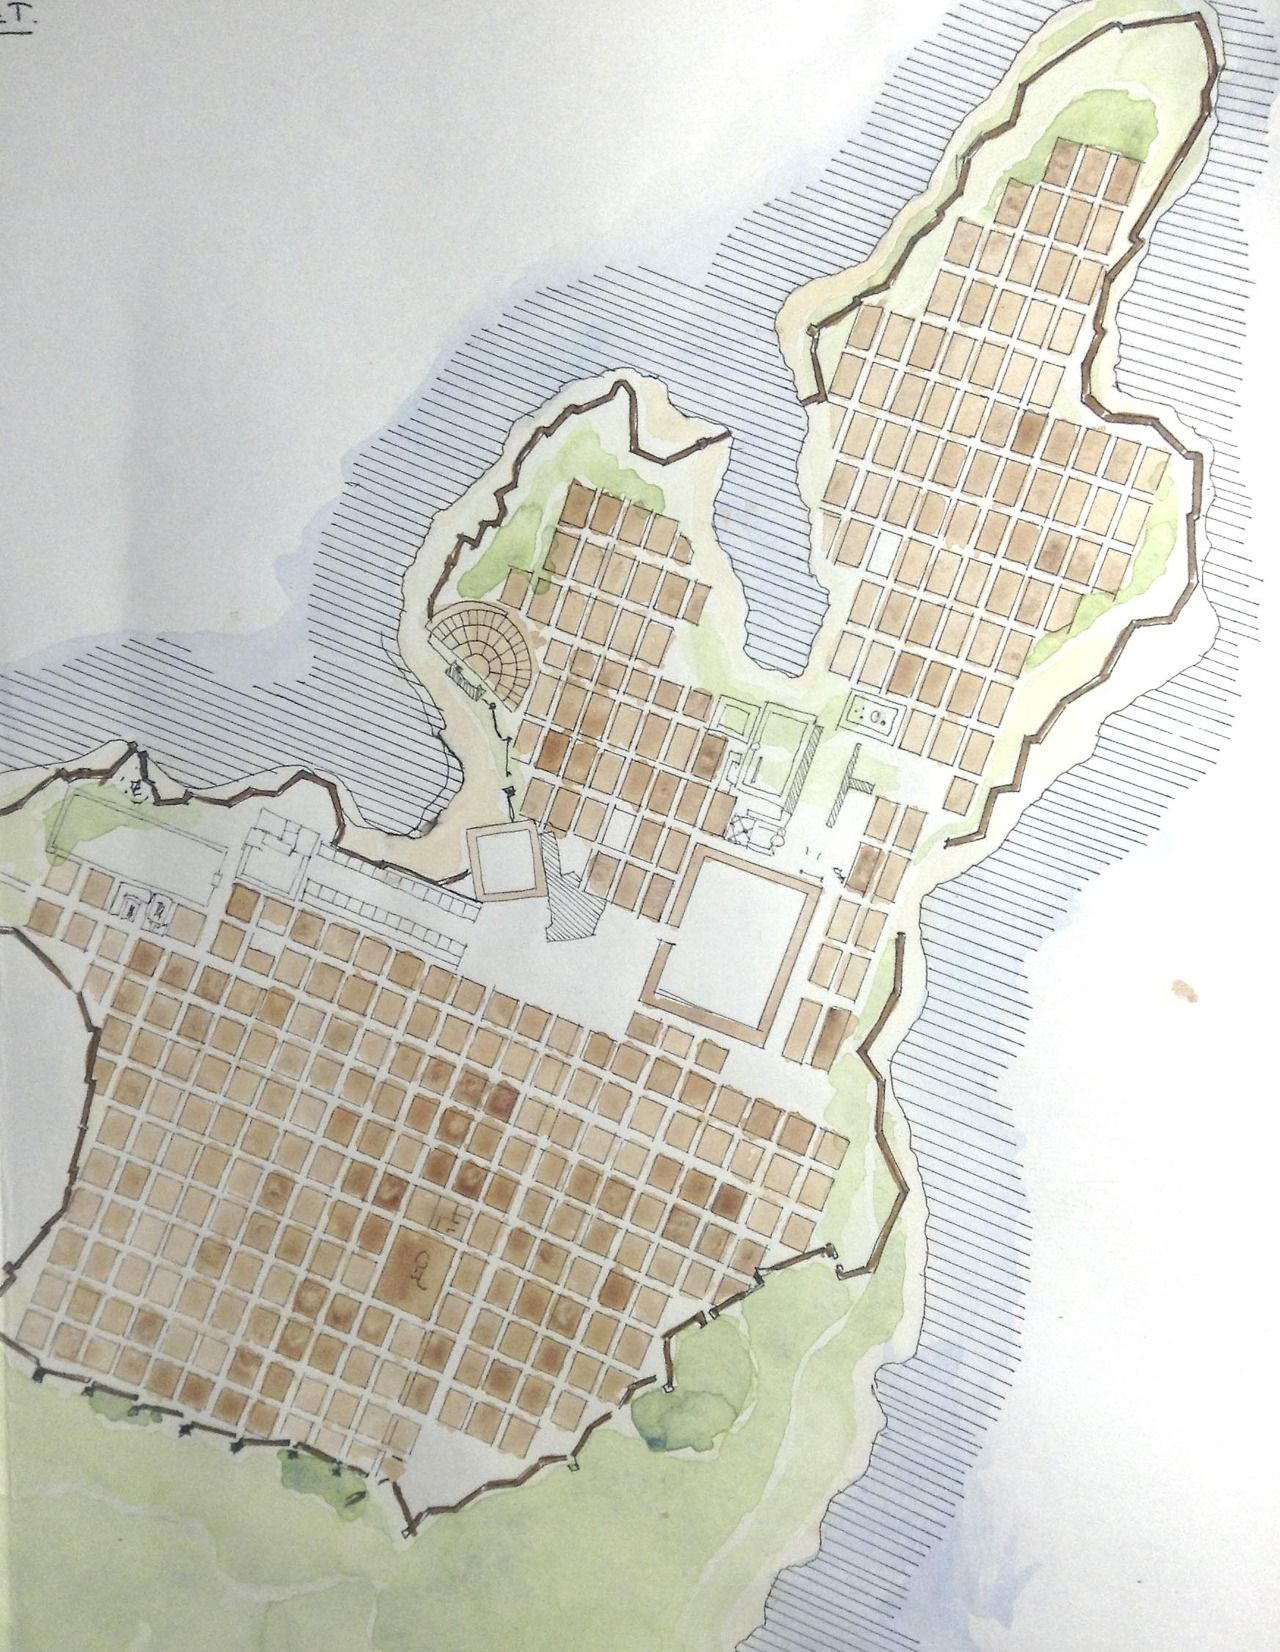 Miletus ancient port city in Western